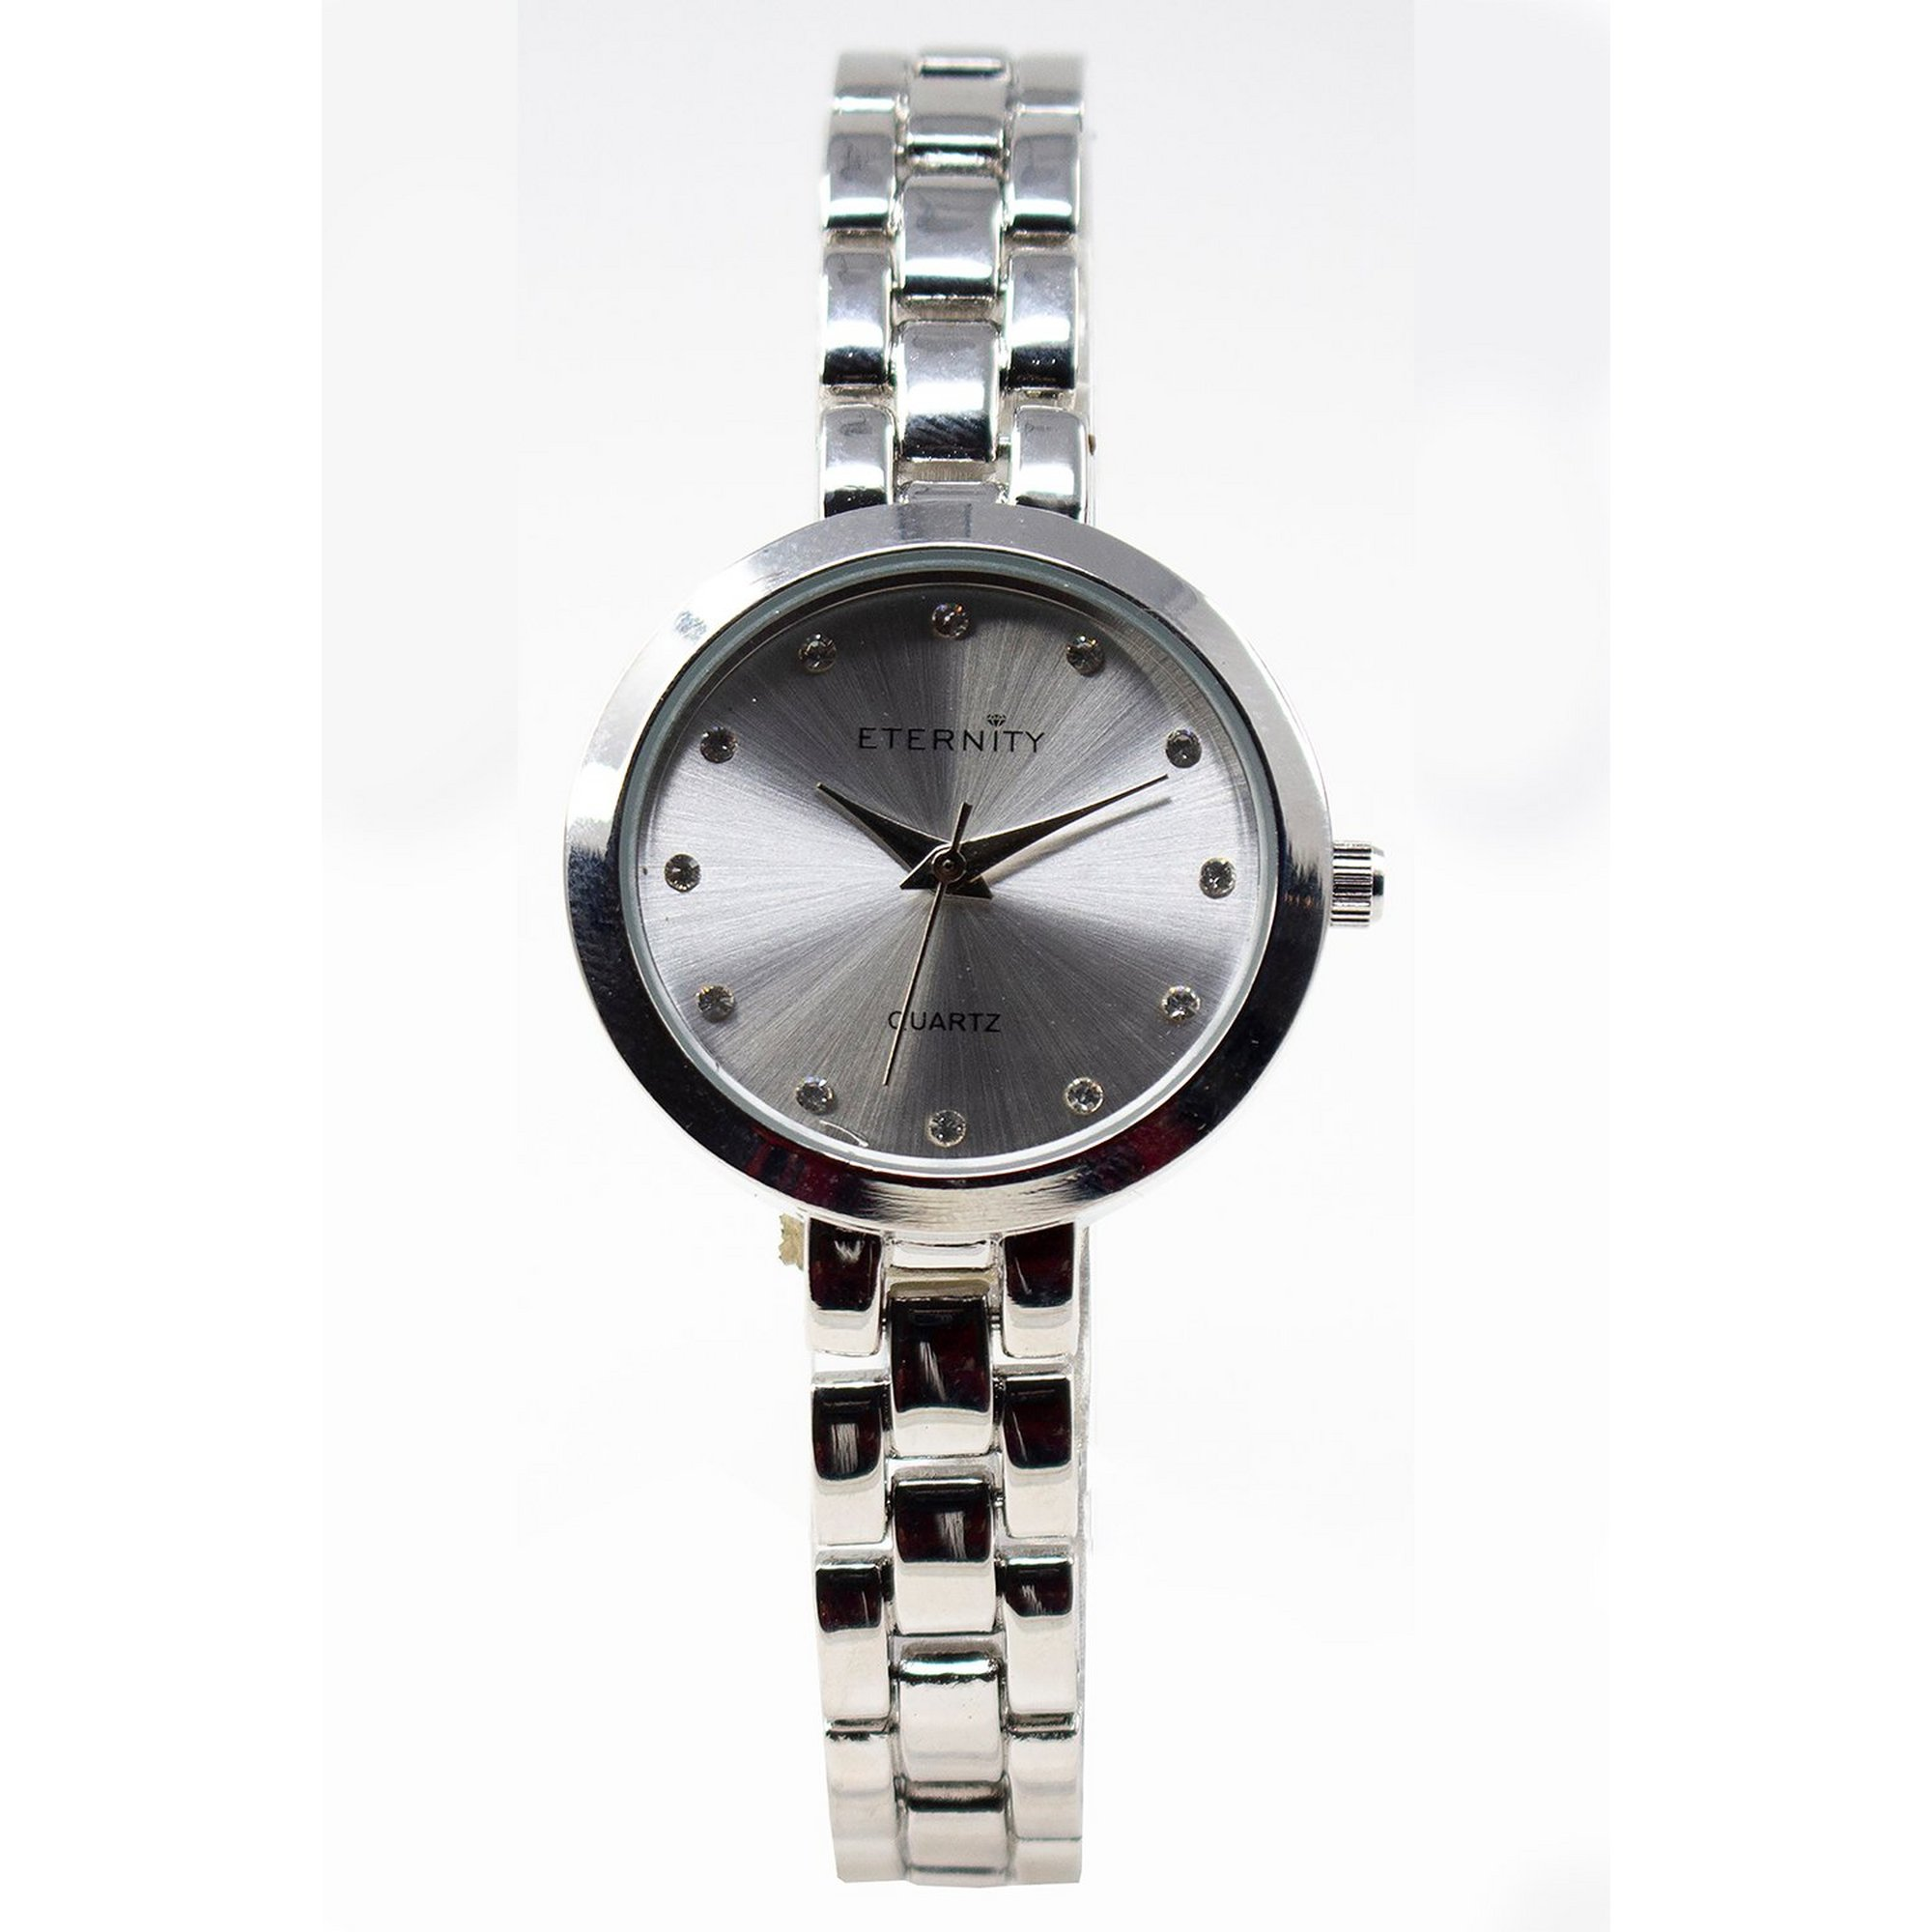 Image of Eternity Silver Analogue Watch with Silver Dial